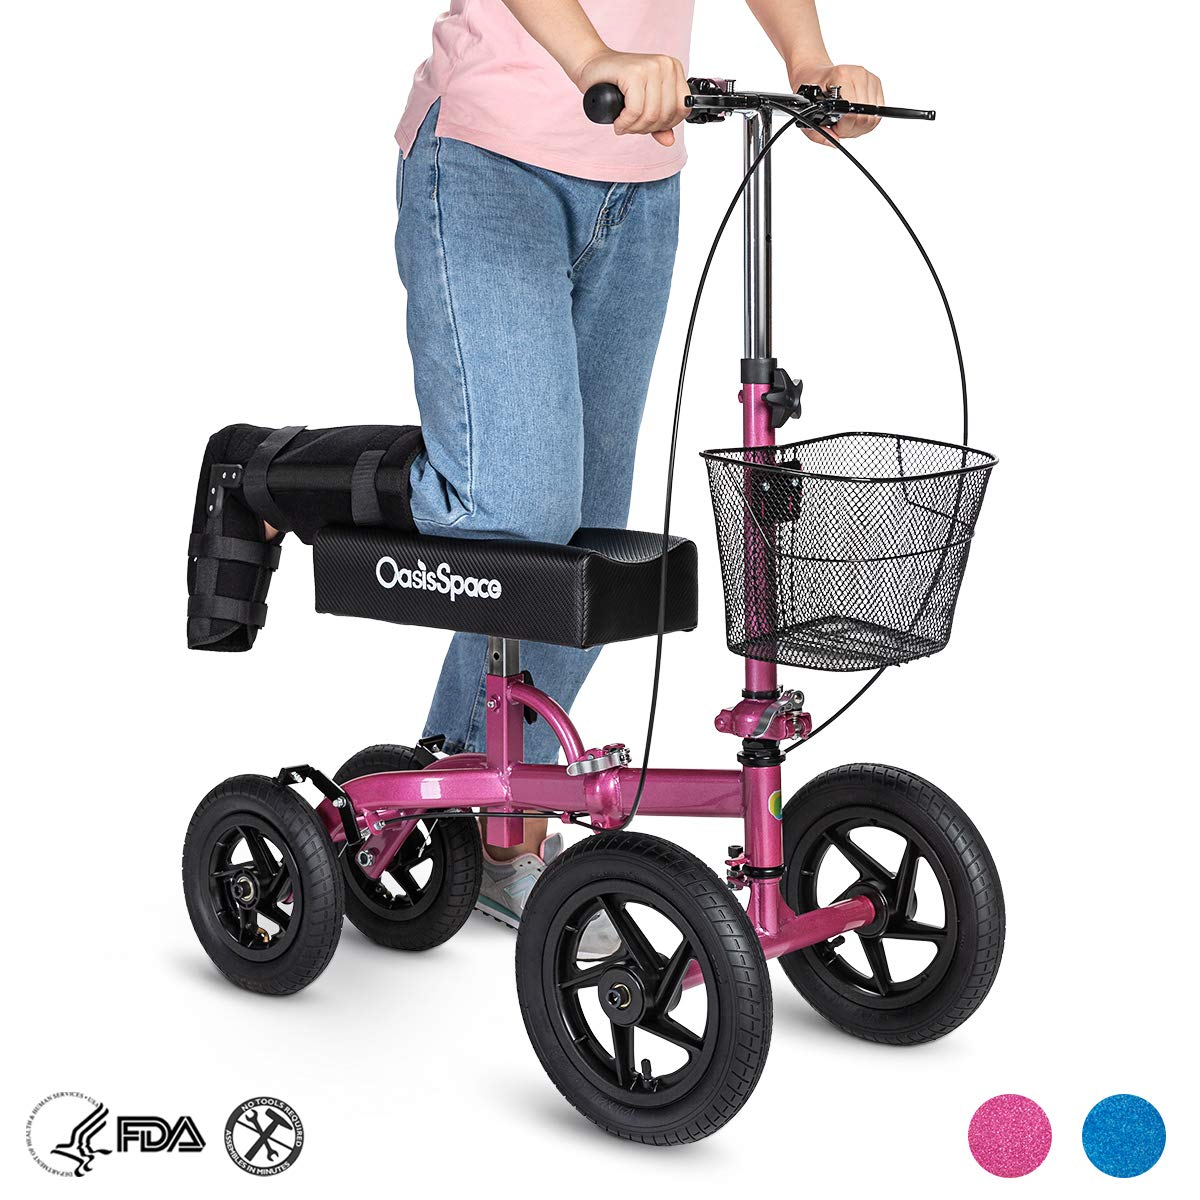 OasisSpace All Terrain Knee Scooter,with 12 inches Air Filled Wheels, Steerable Knee Walker Heavy Duty Crutches for Foot Injuries Ankles Surgery (Pink) by OasisSpace